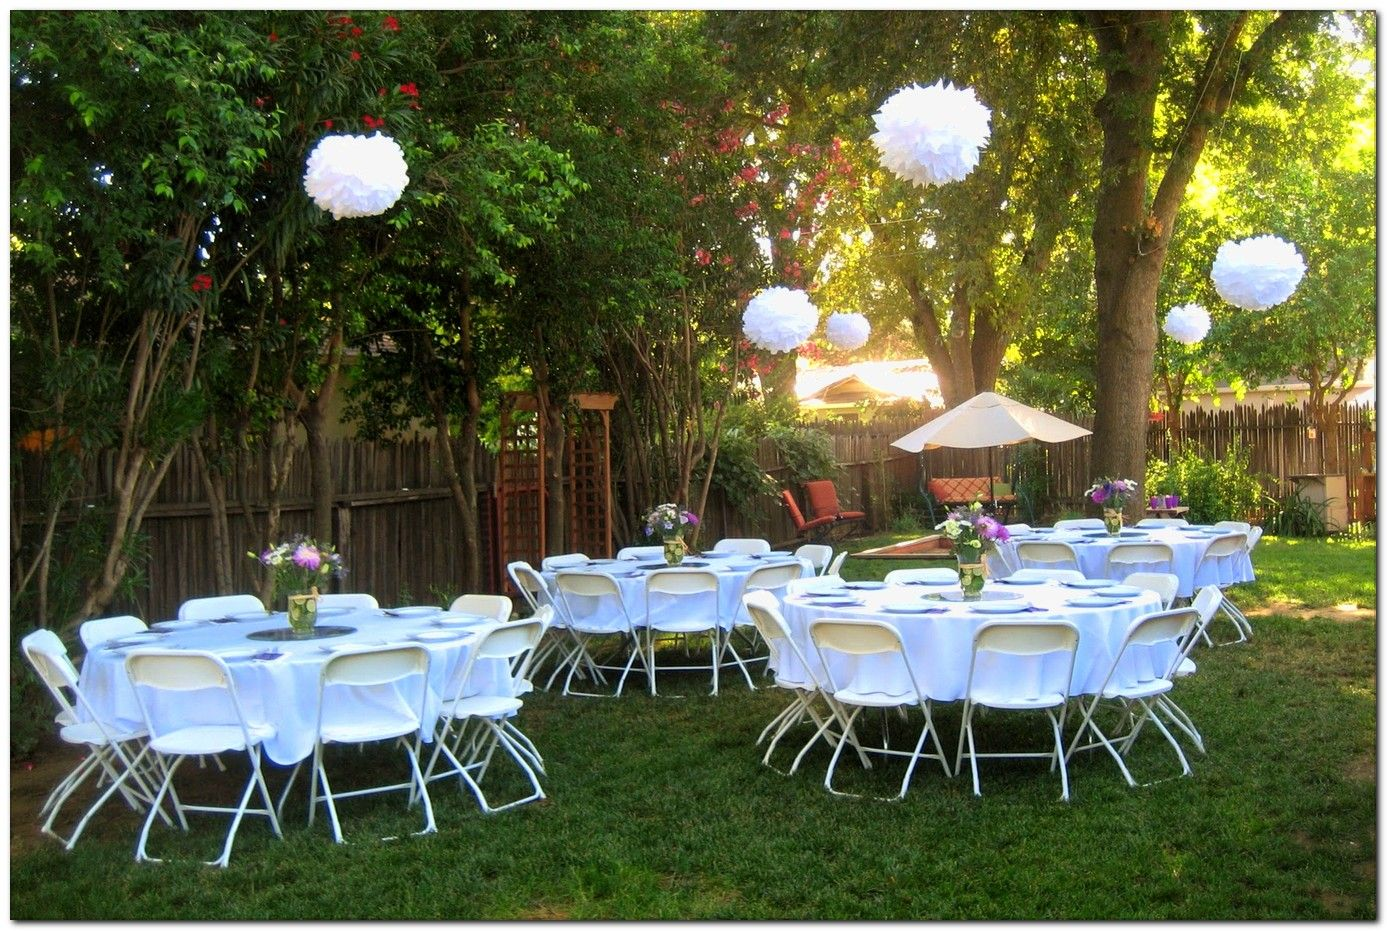 Graduation Party Decorating Ideas simple and lovely graduation party decoration idea - hanging